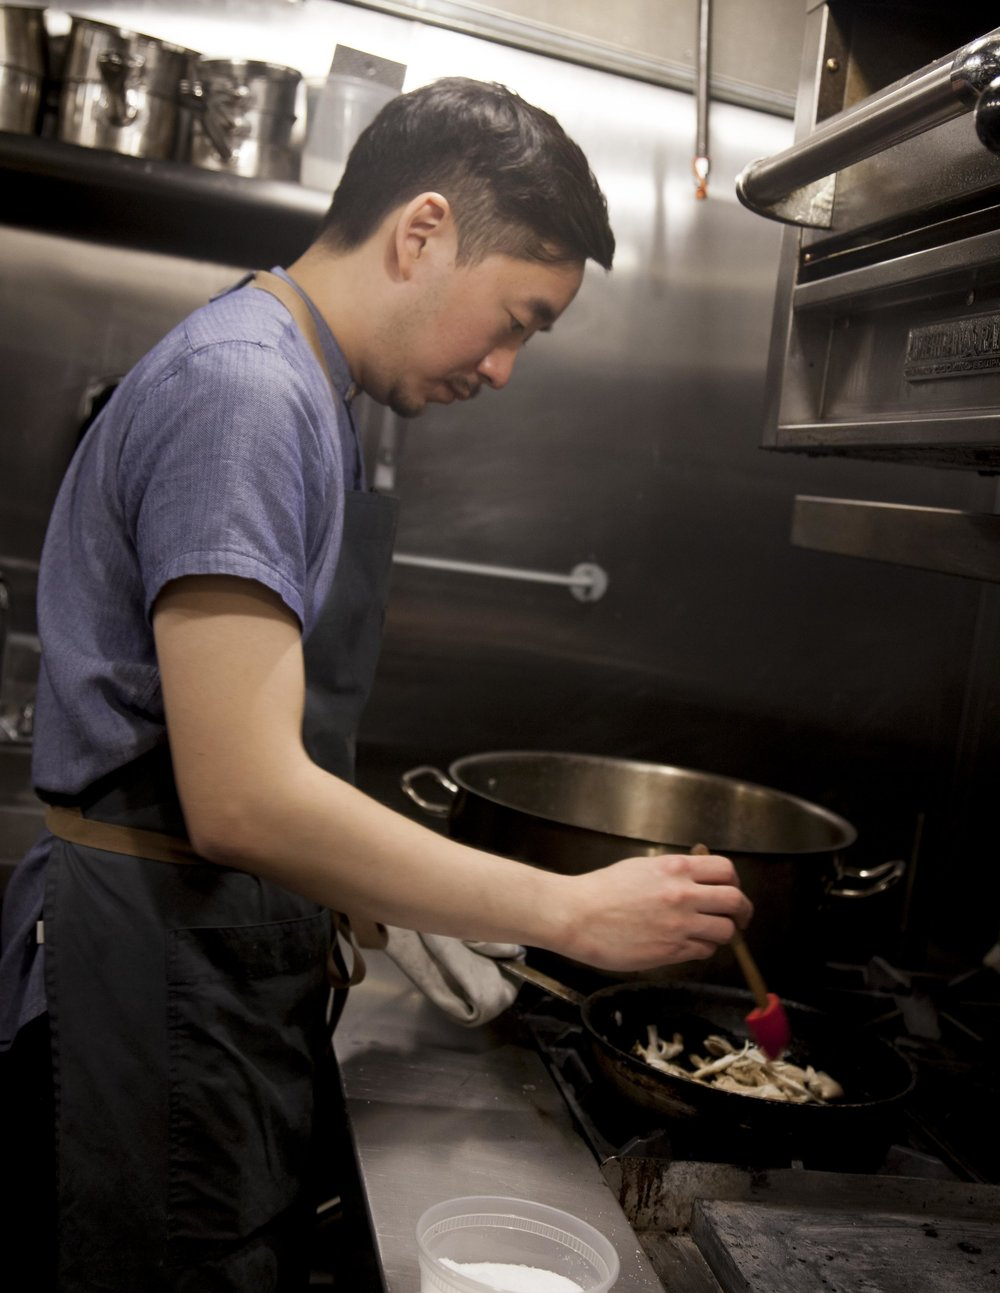 Chef Junghyun prepares a crispy sunchoke dish in his kitchen.